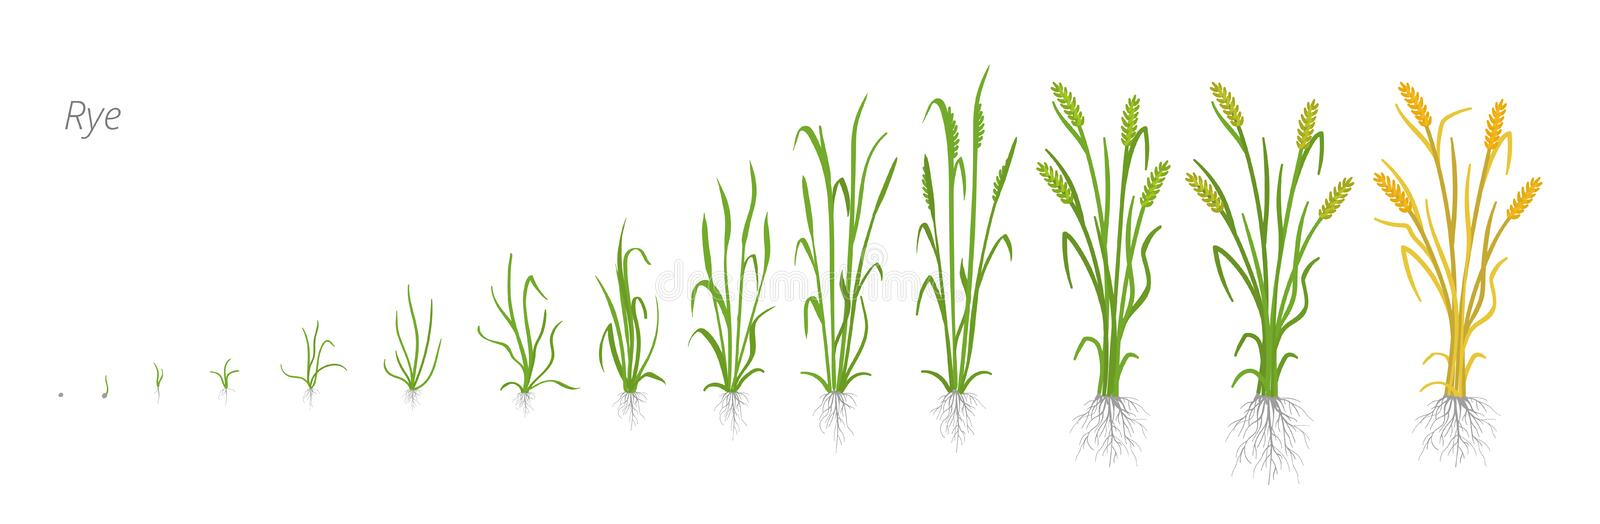 Growth stages of Rye plant. Cereal increase phases. Vector illustration. Secale cereale. Ripening period. Rye grain life. Cycle. On white background. It is the stock illustration